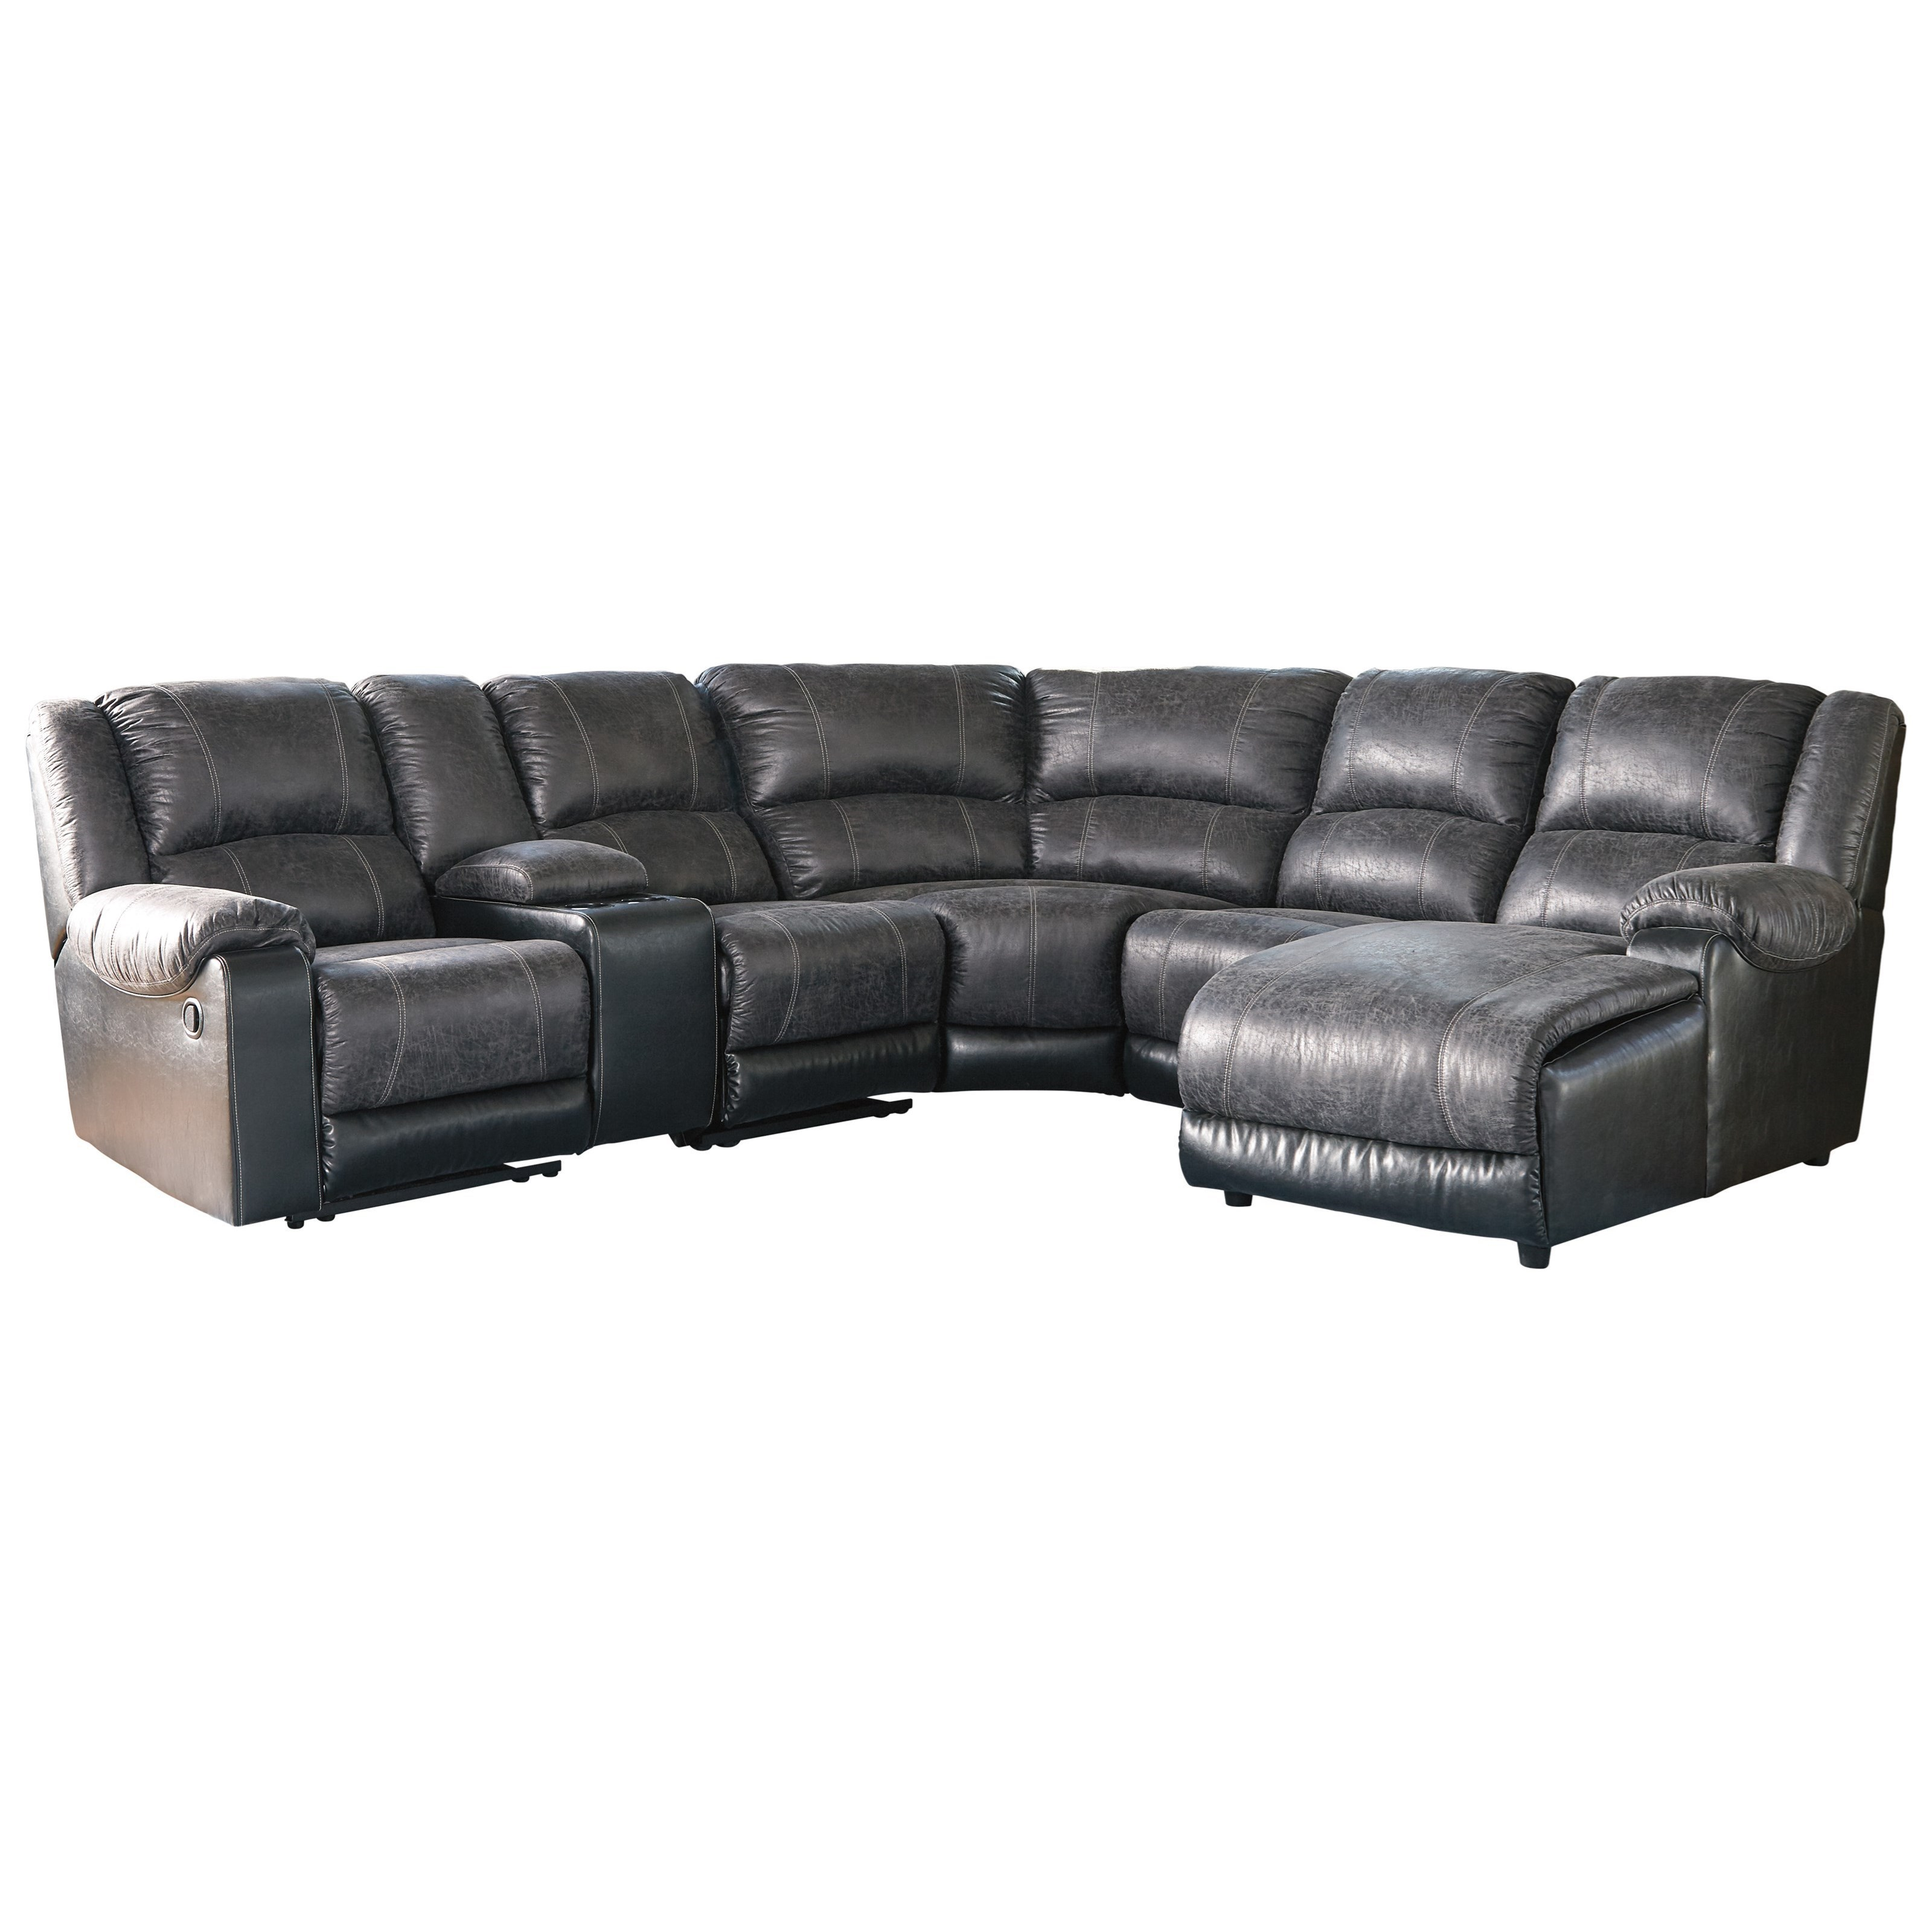 Nantahala Faux Leather Reclining Sectional With Chaise U0026 Console By  Signature Design By Ashley